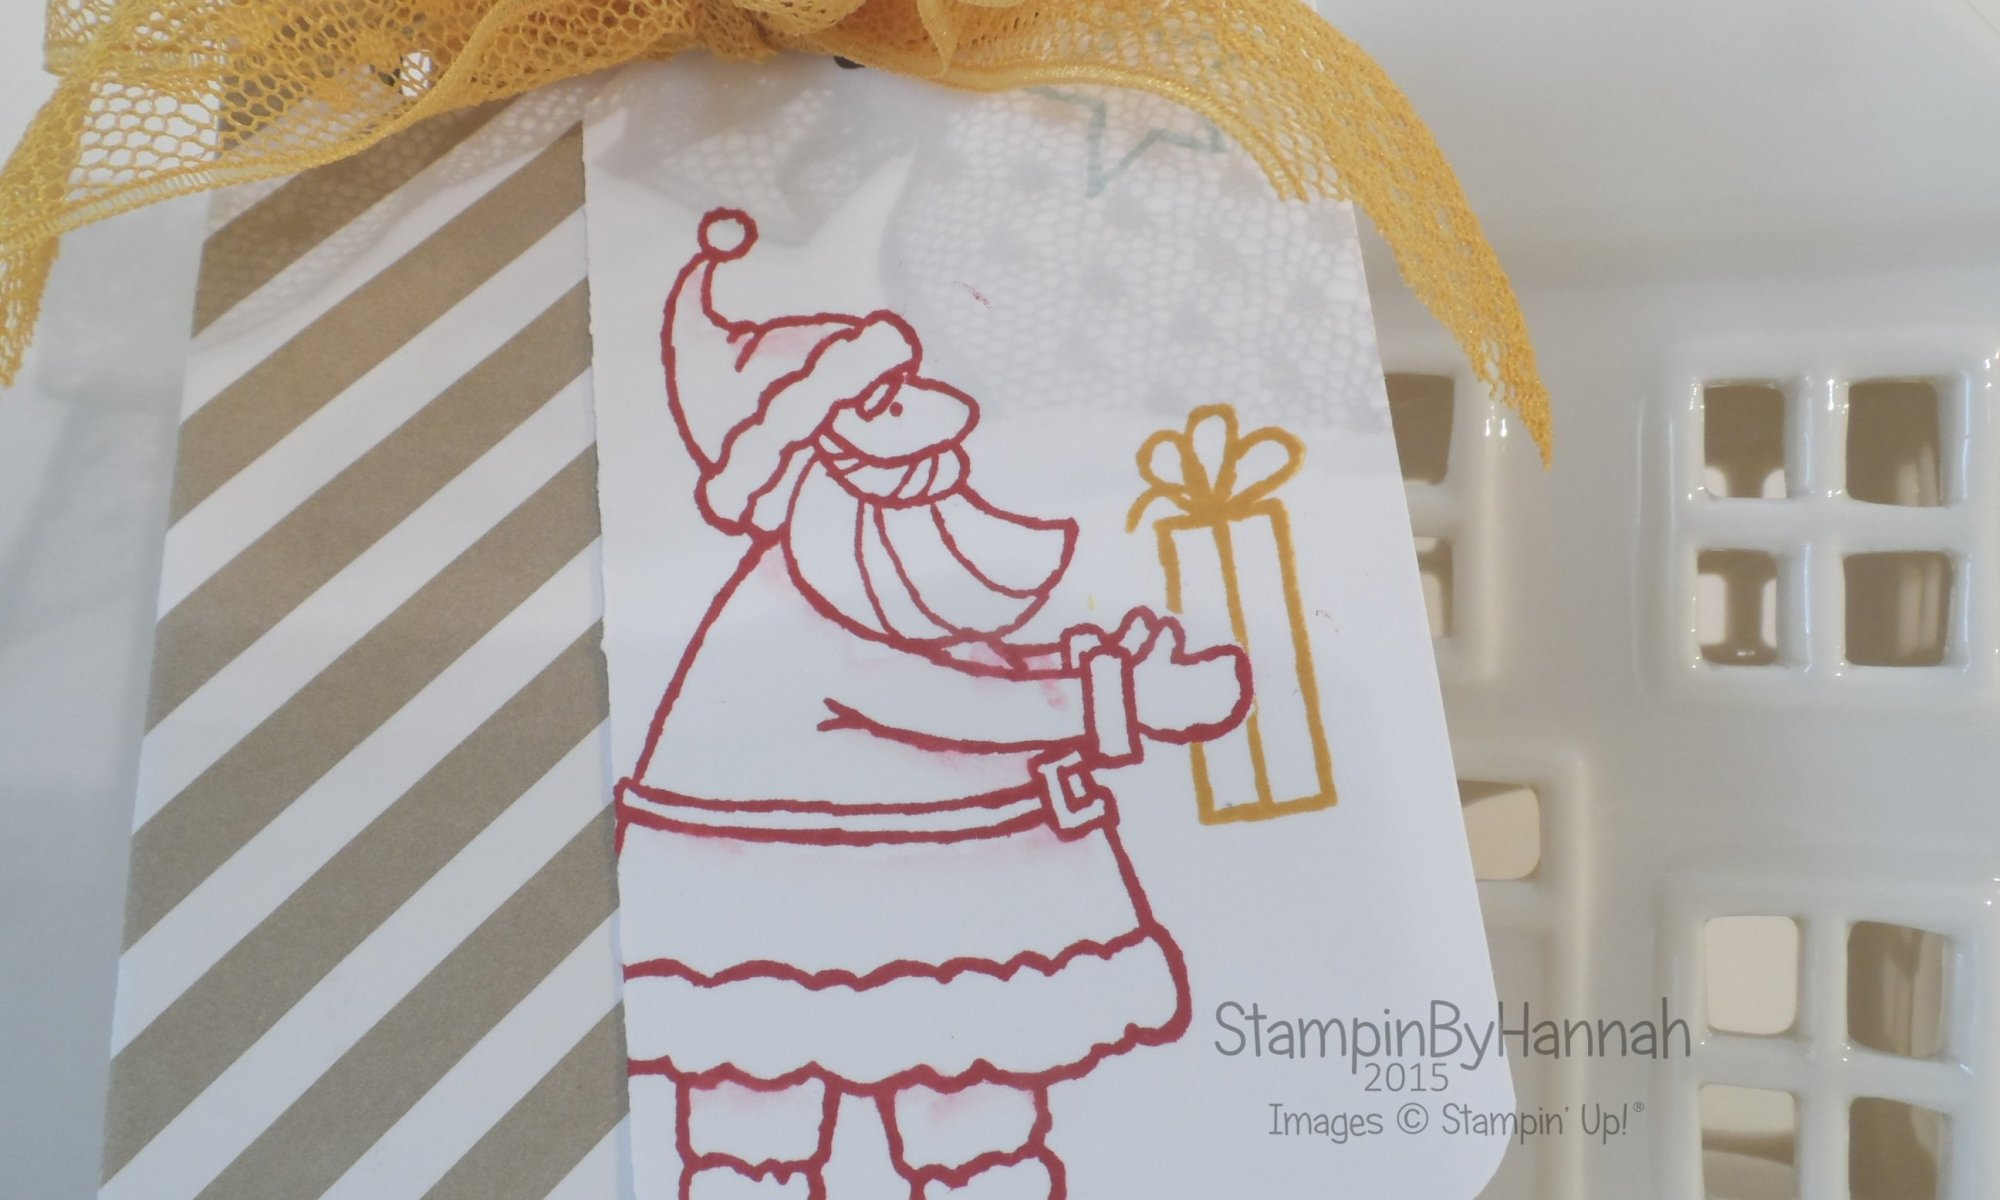 Stampin' Up! On Stage Live team gift